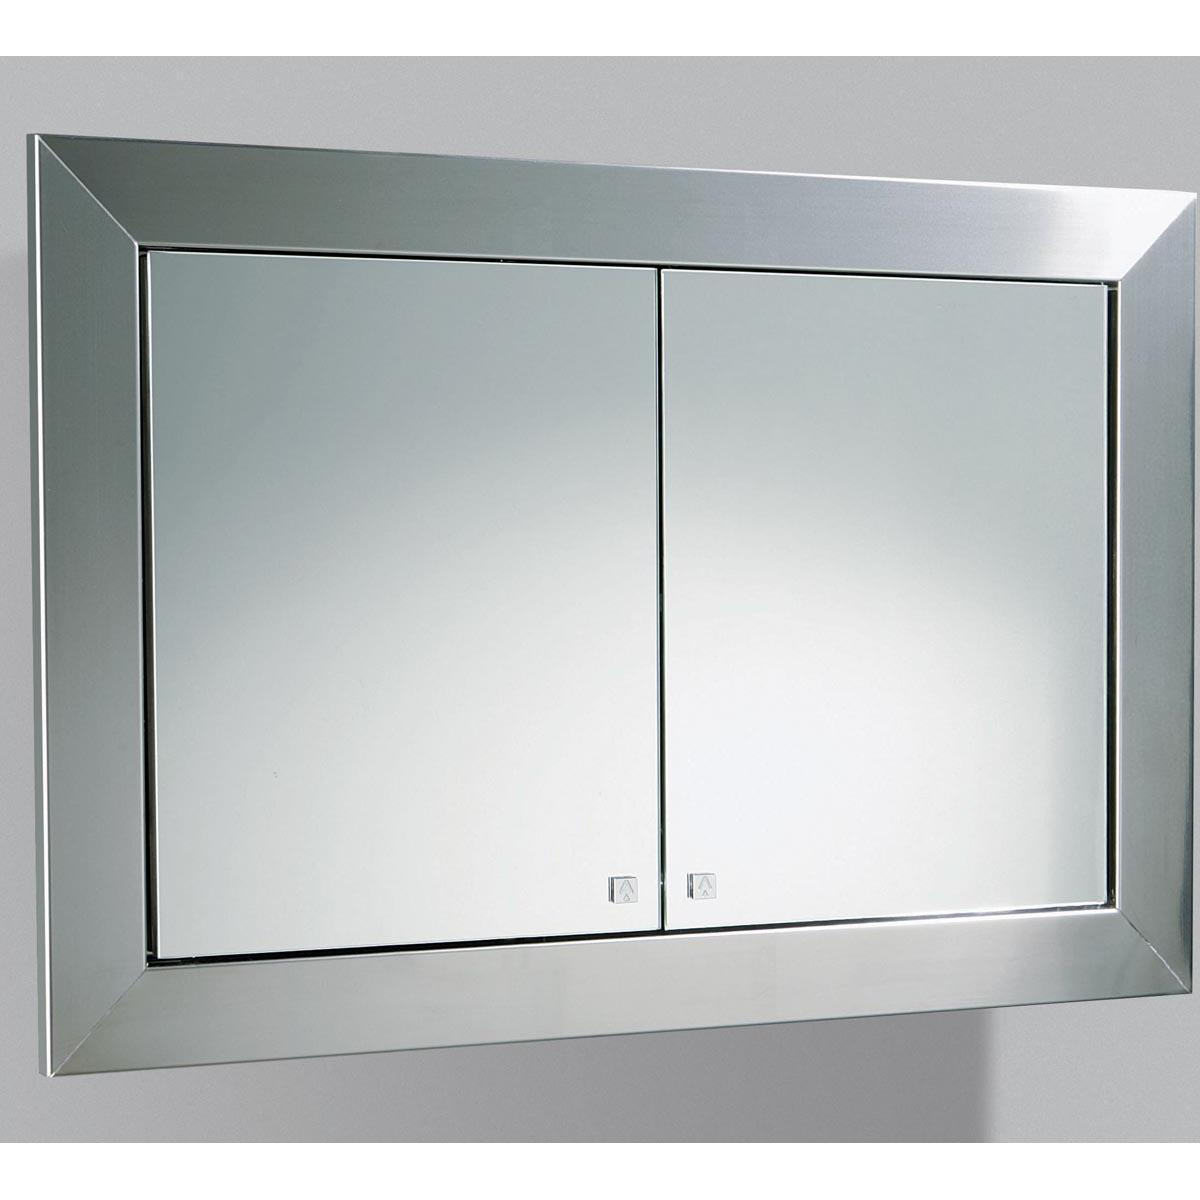 Bathroom Mirrored Cabinets Mirror Cabinet For Bathroom China Stainless Steel Cabinet